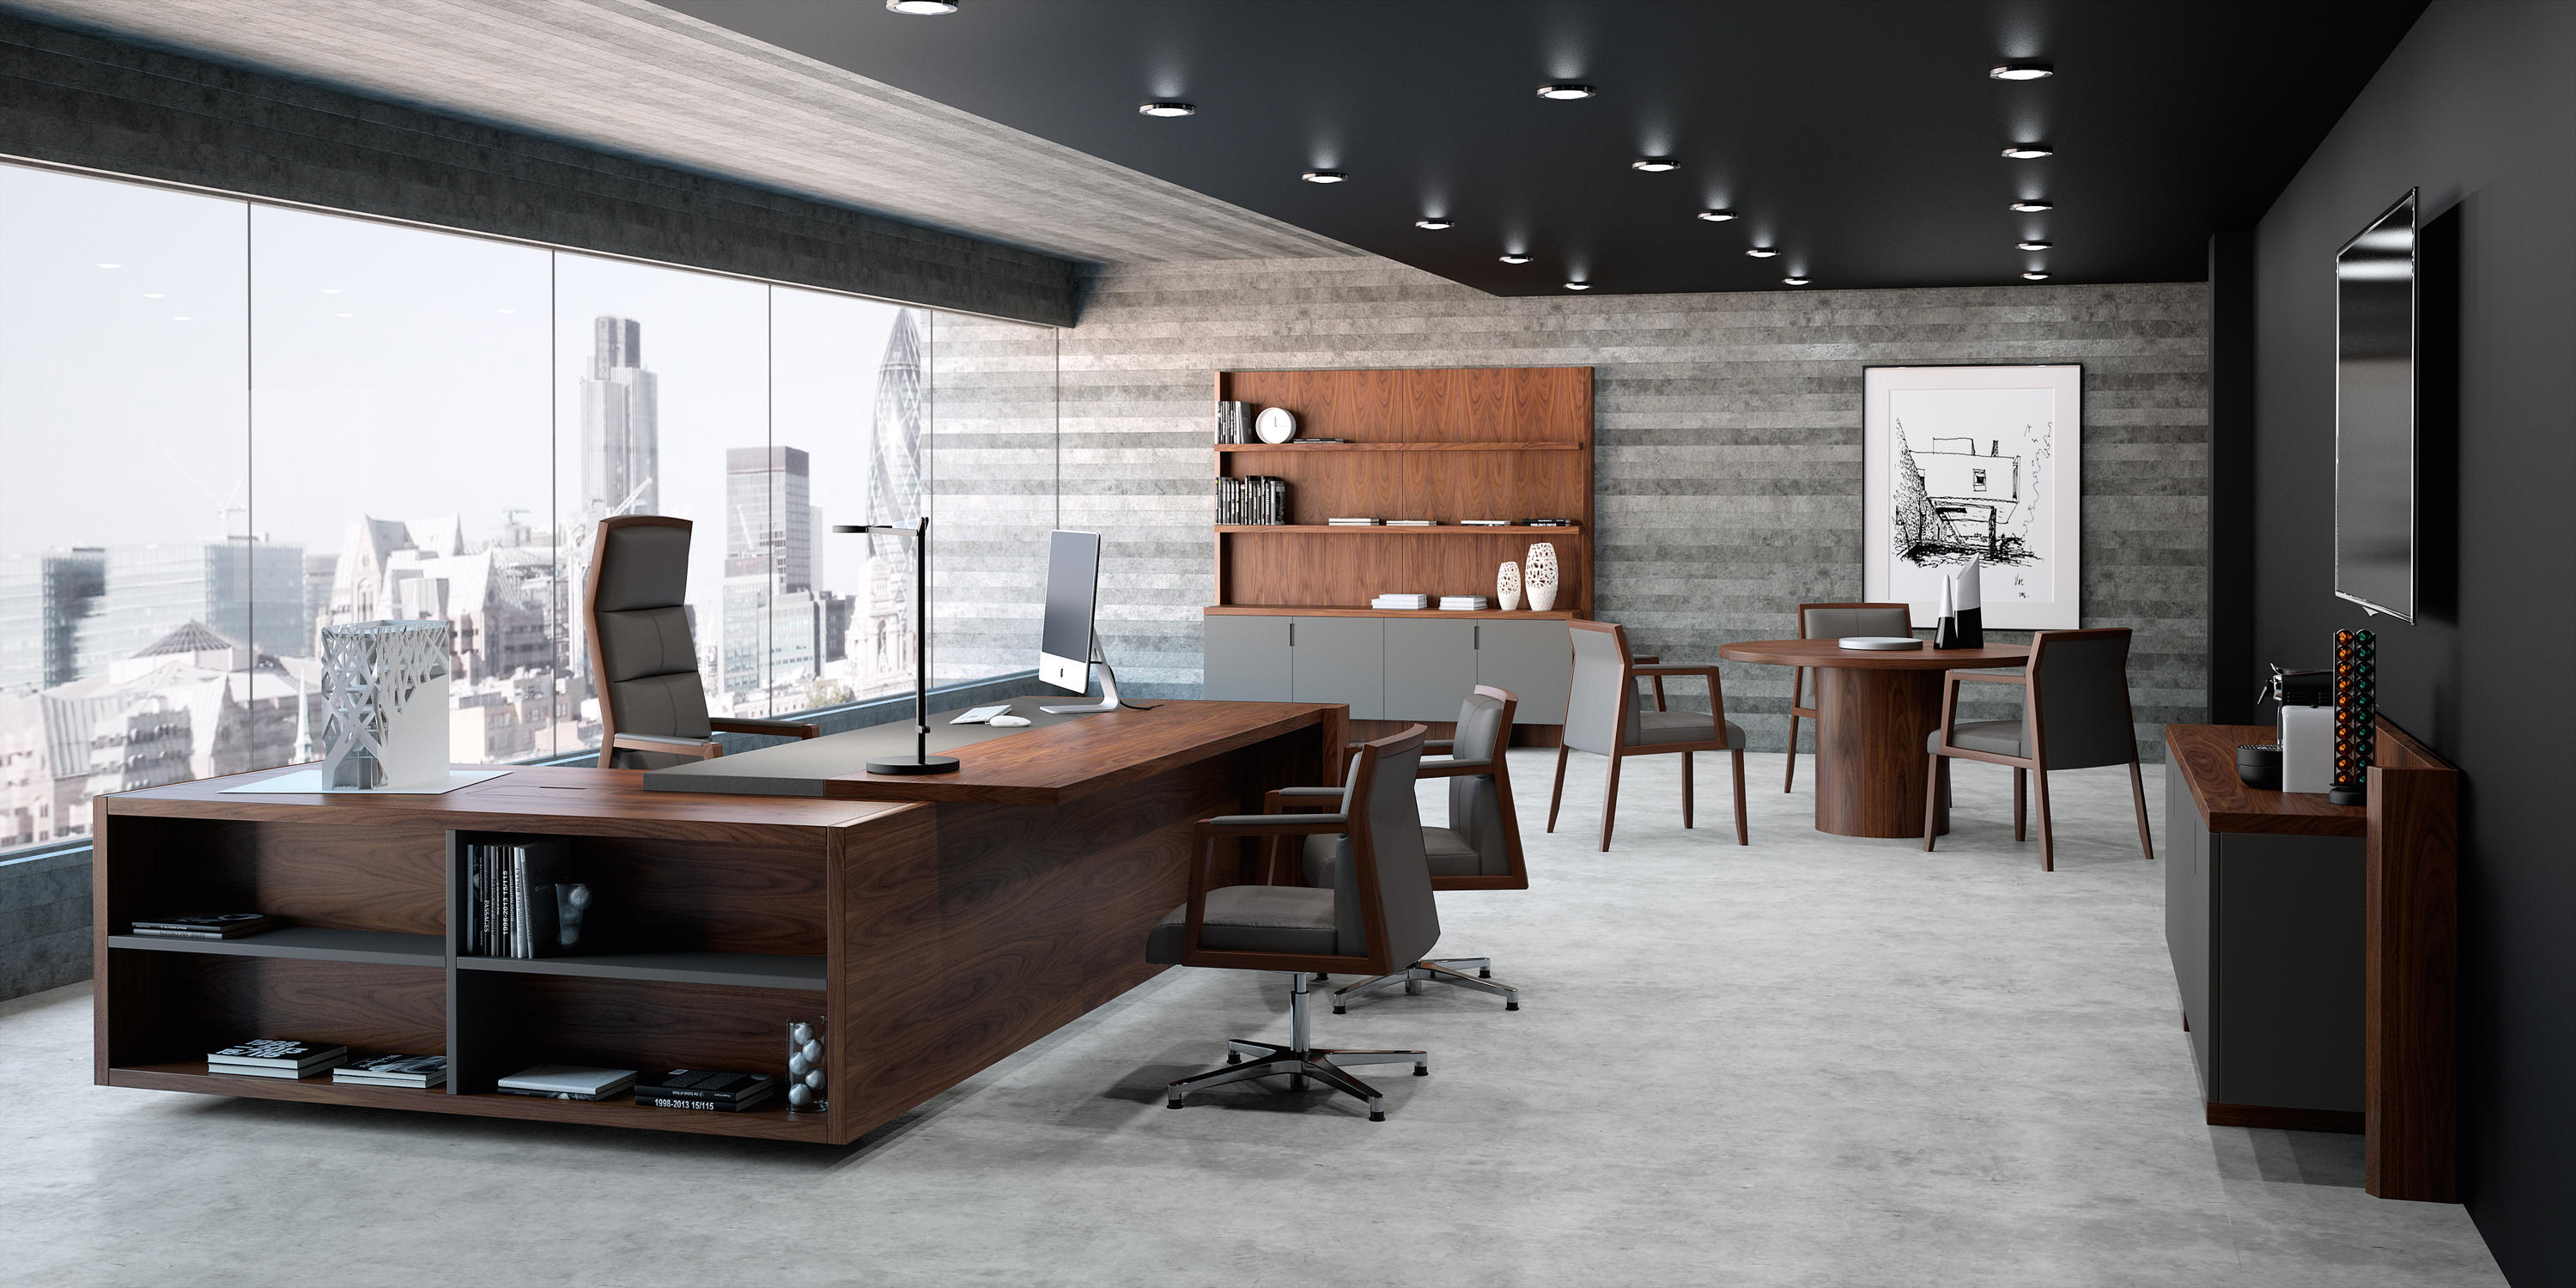 Freeport mesa direcci n executive desks from ofifran for Muebles de oficina silieri koncept